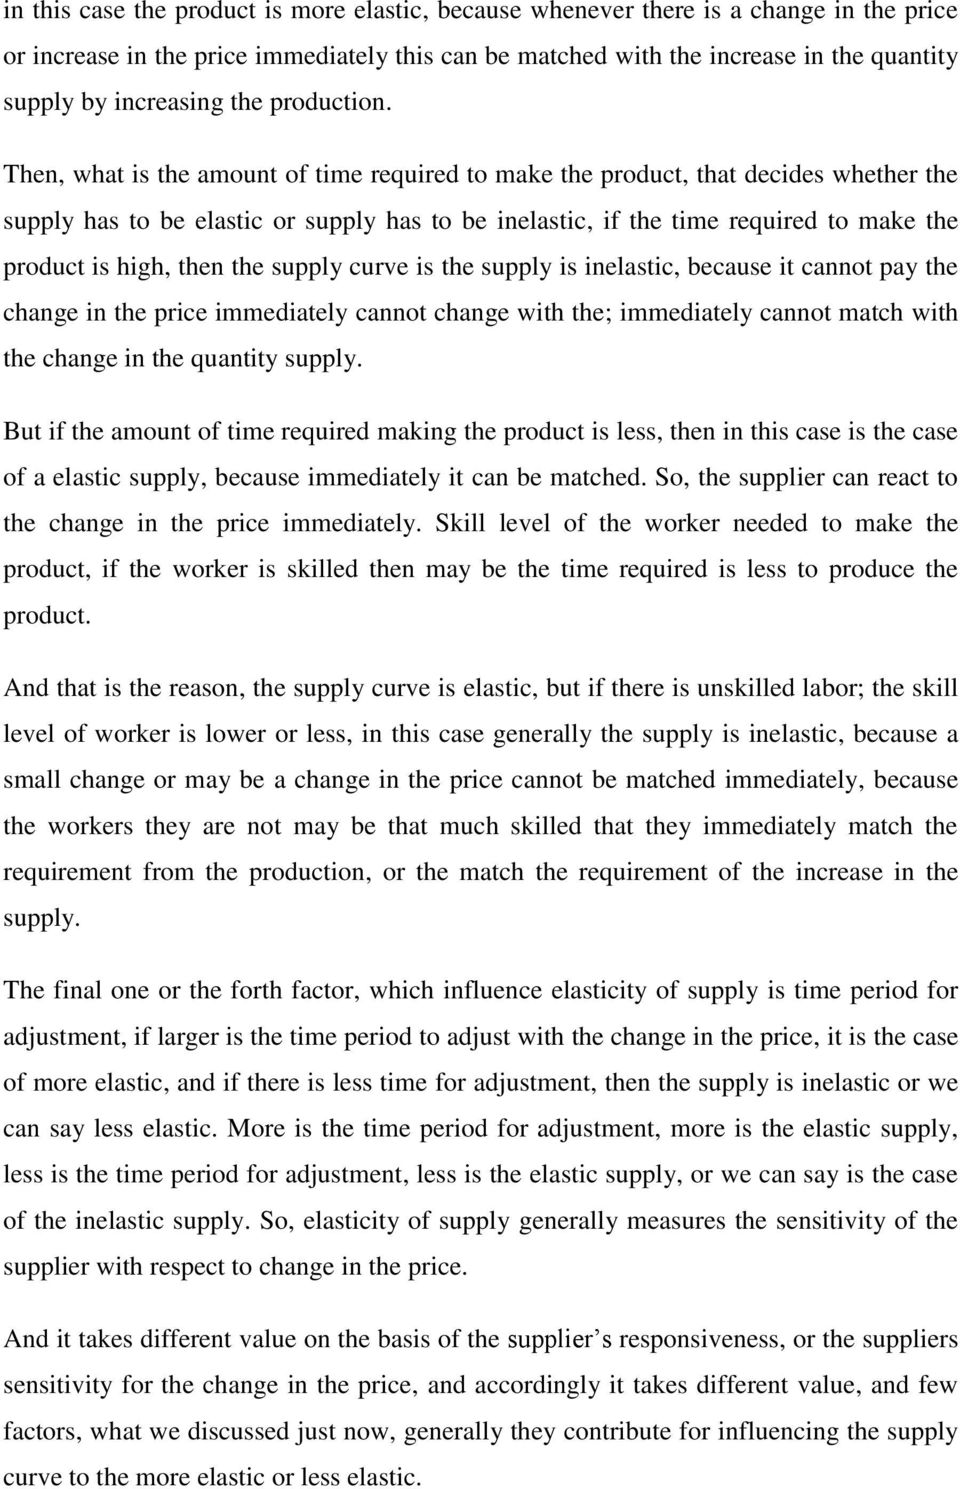 Then, what is the amount of time required to make the product, that decides whether the supply has to be elastic or supply has to be inelastic, if the time required to make the product is high, then